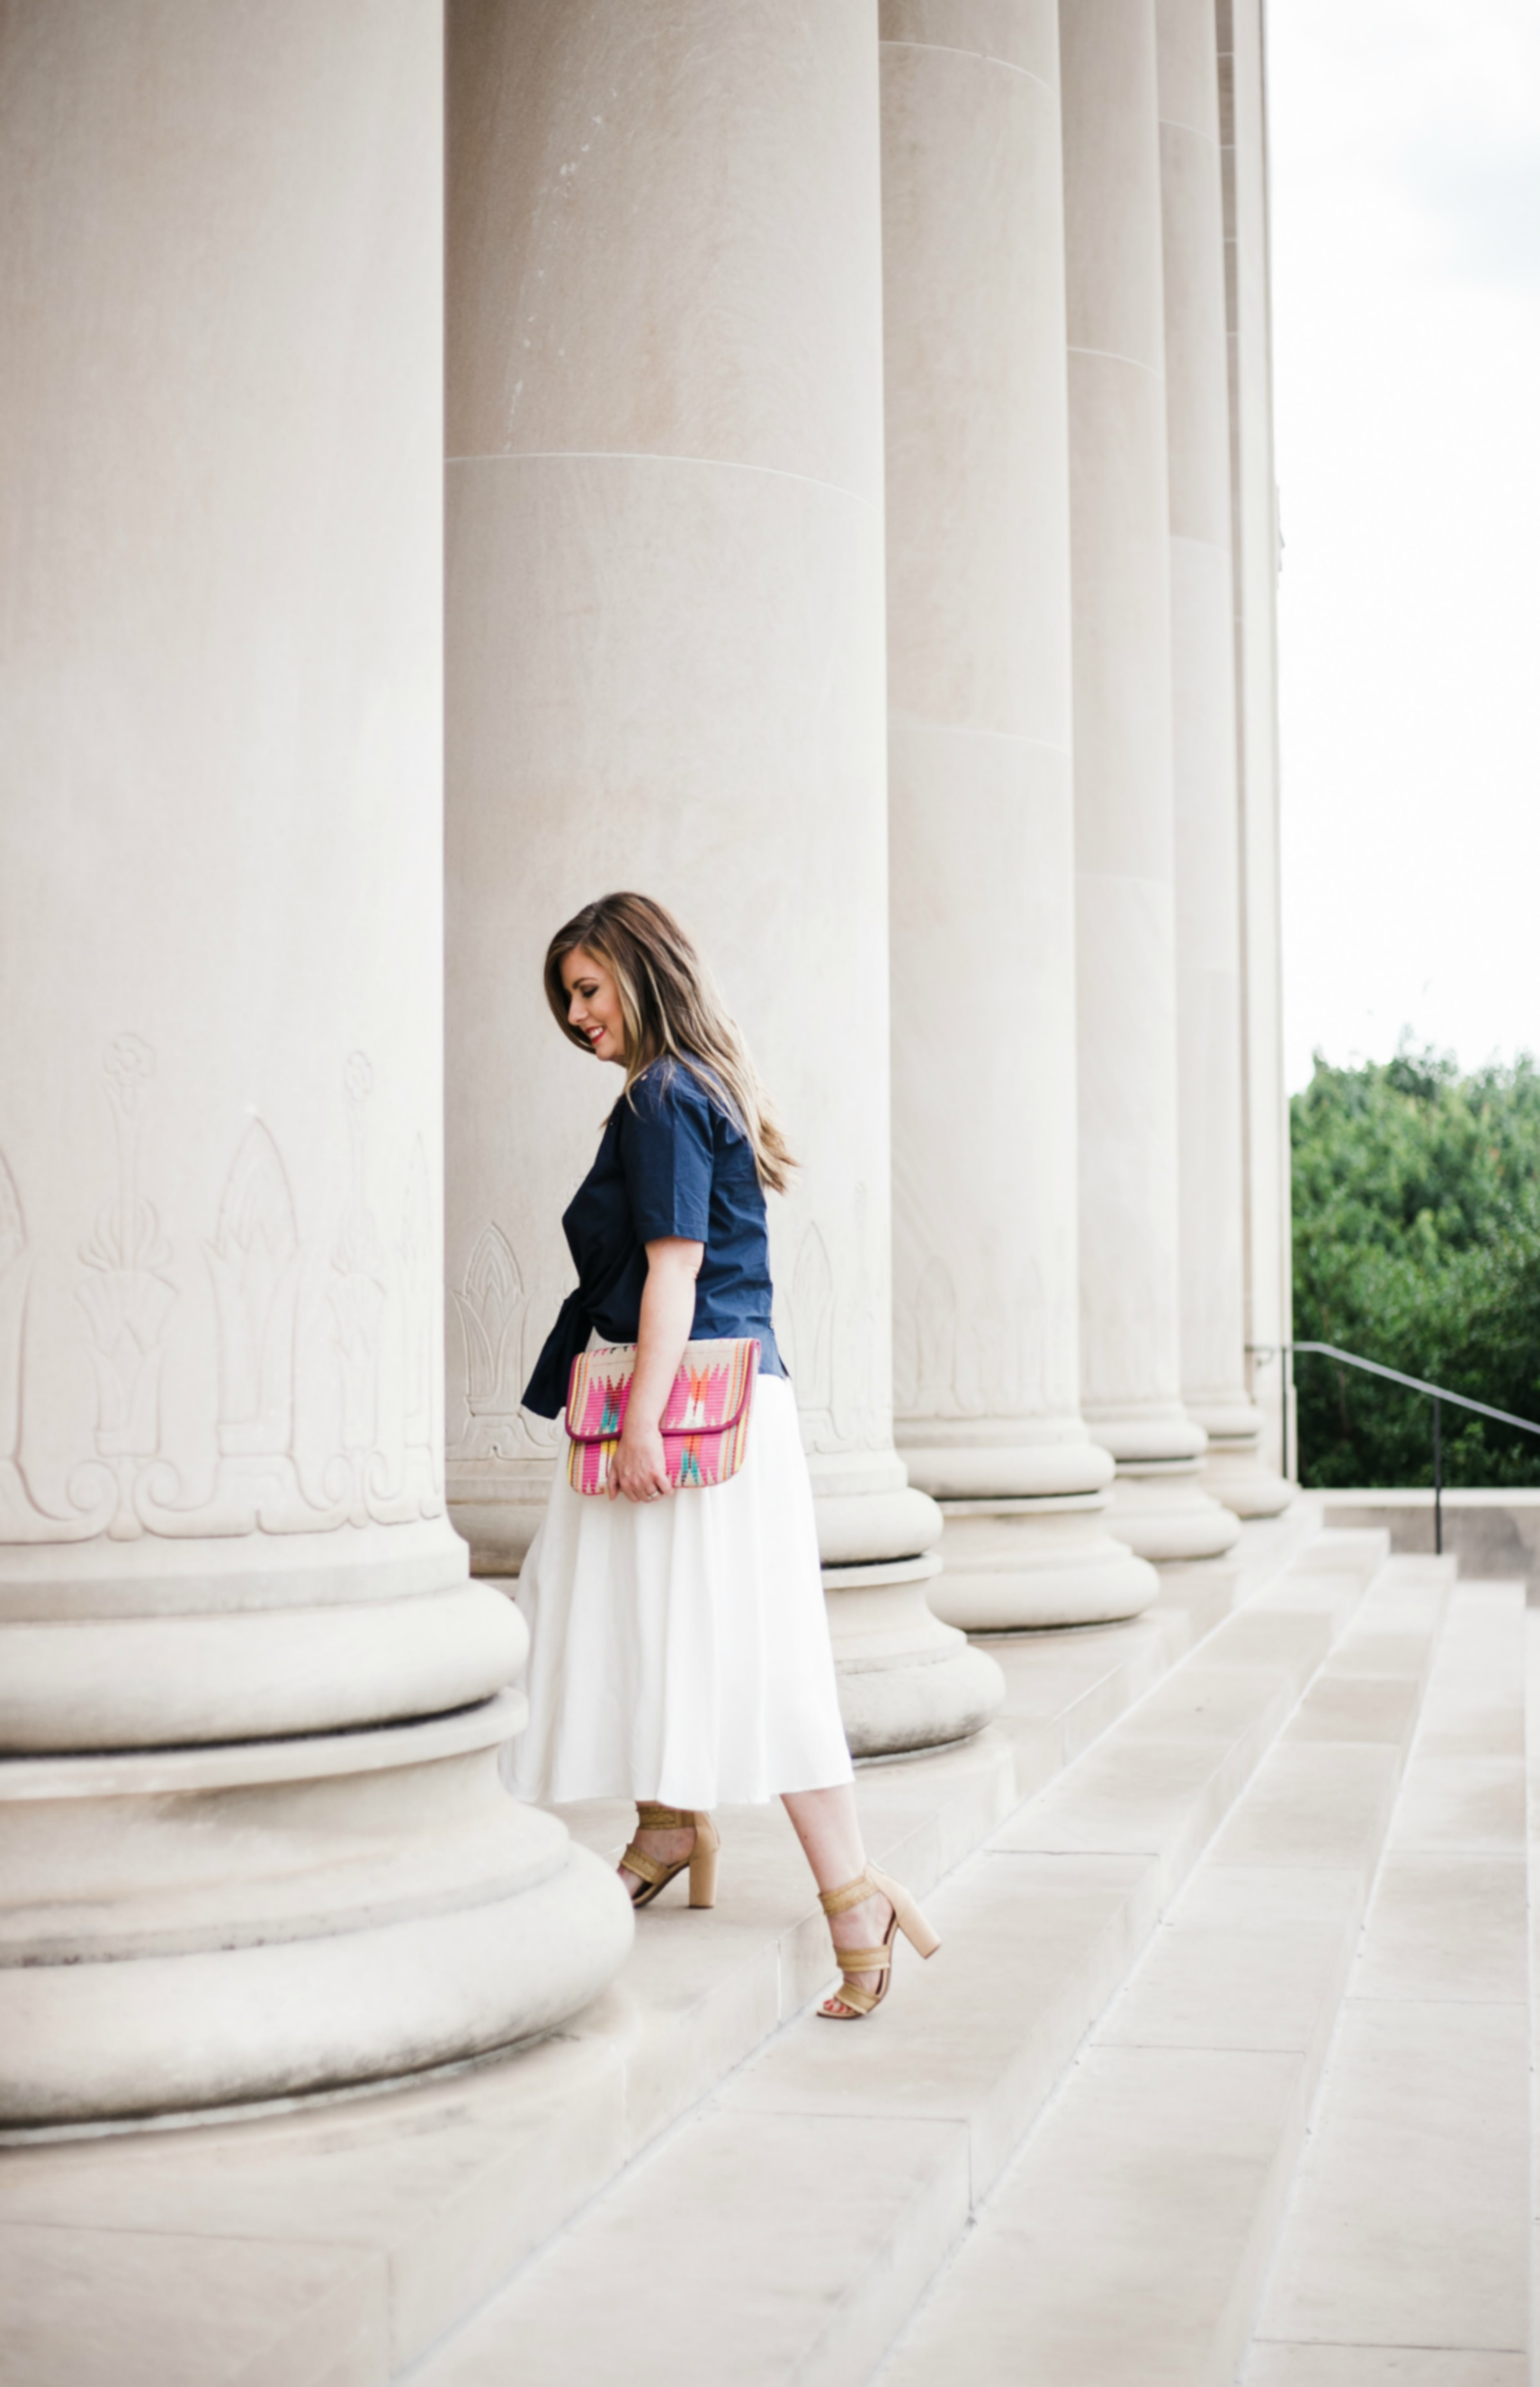 Tie front top for summer with white midi skirt